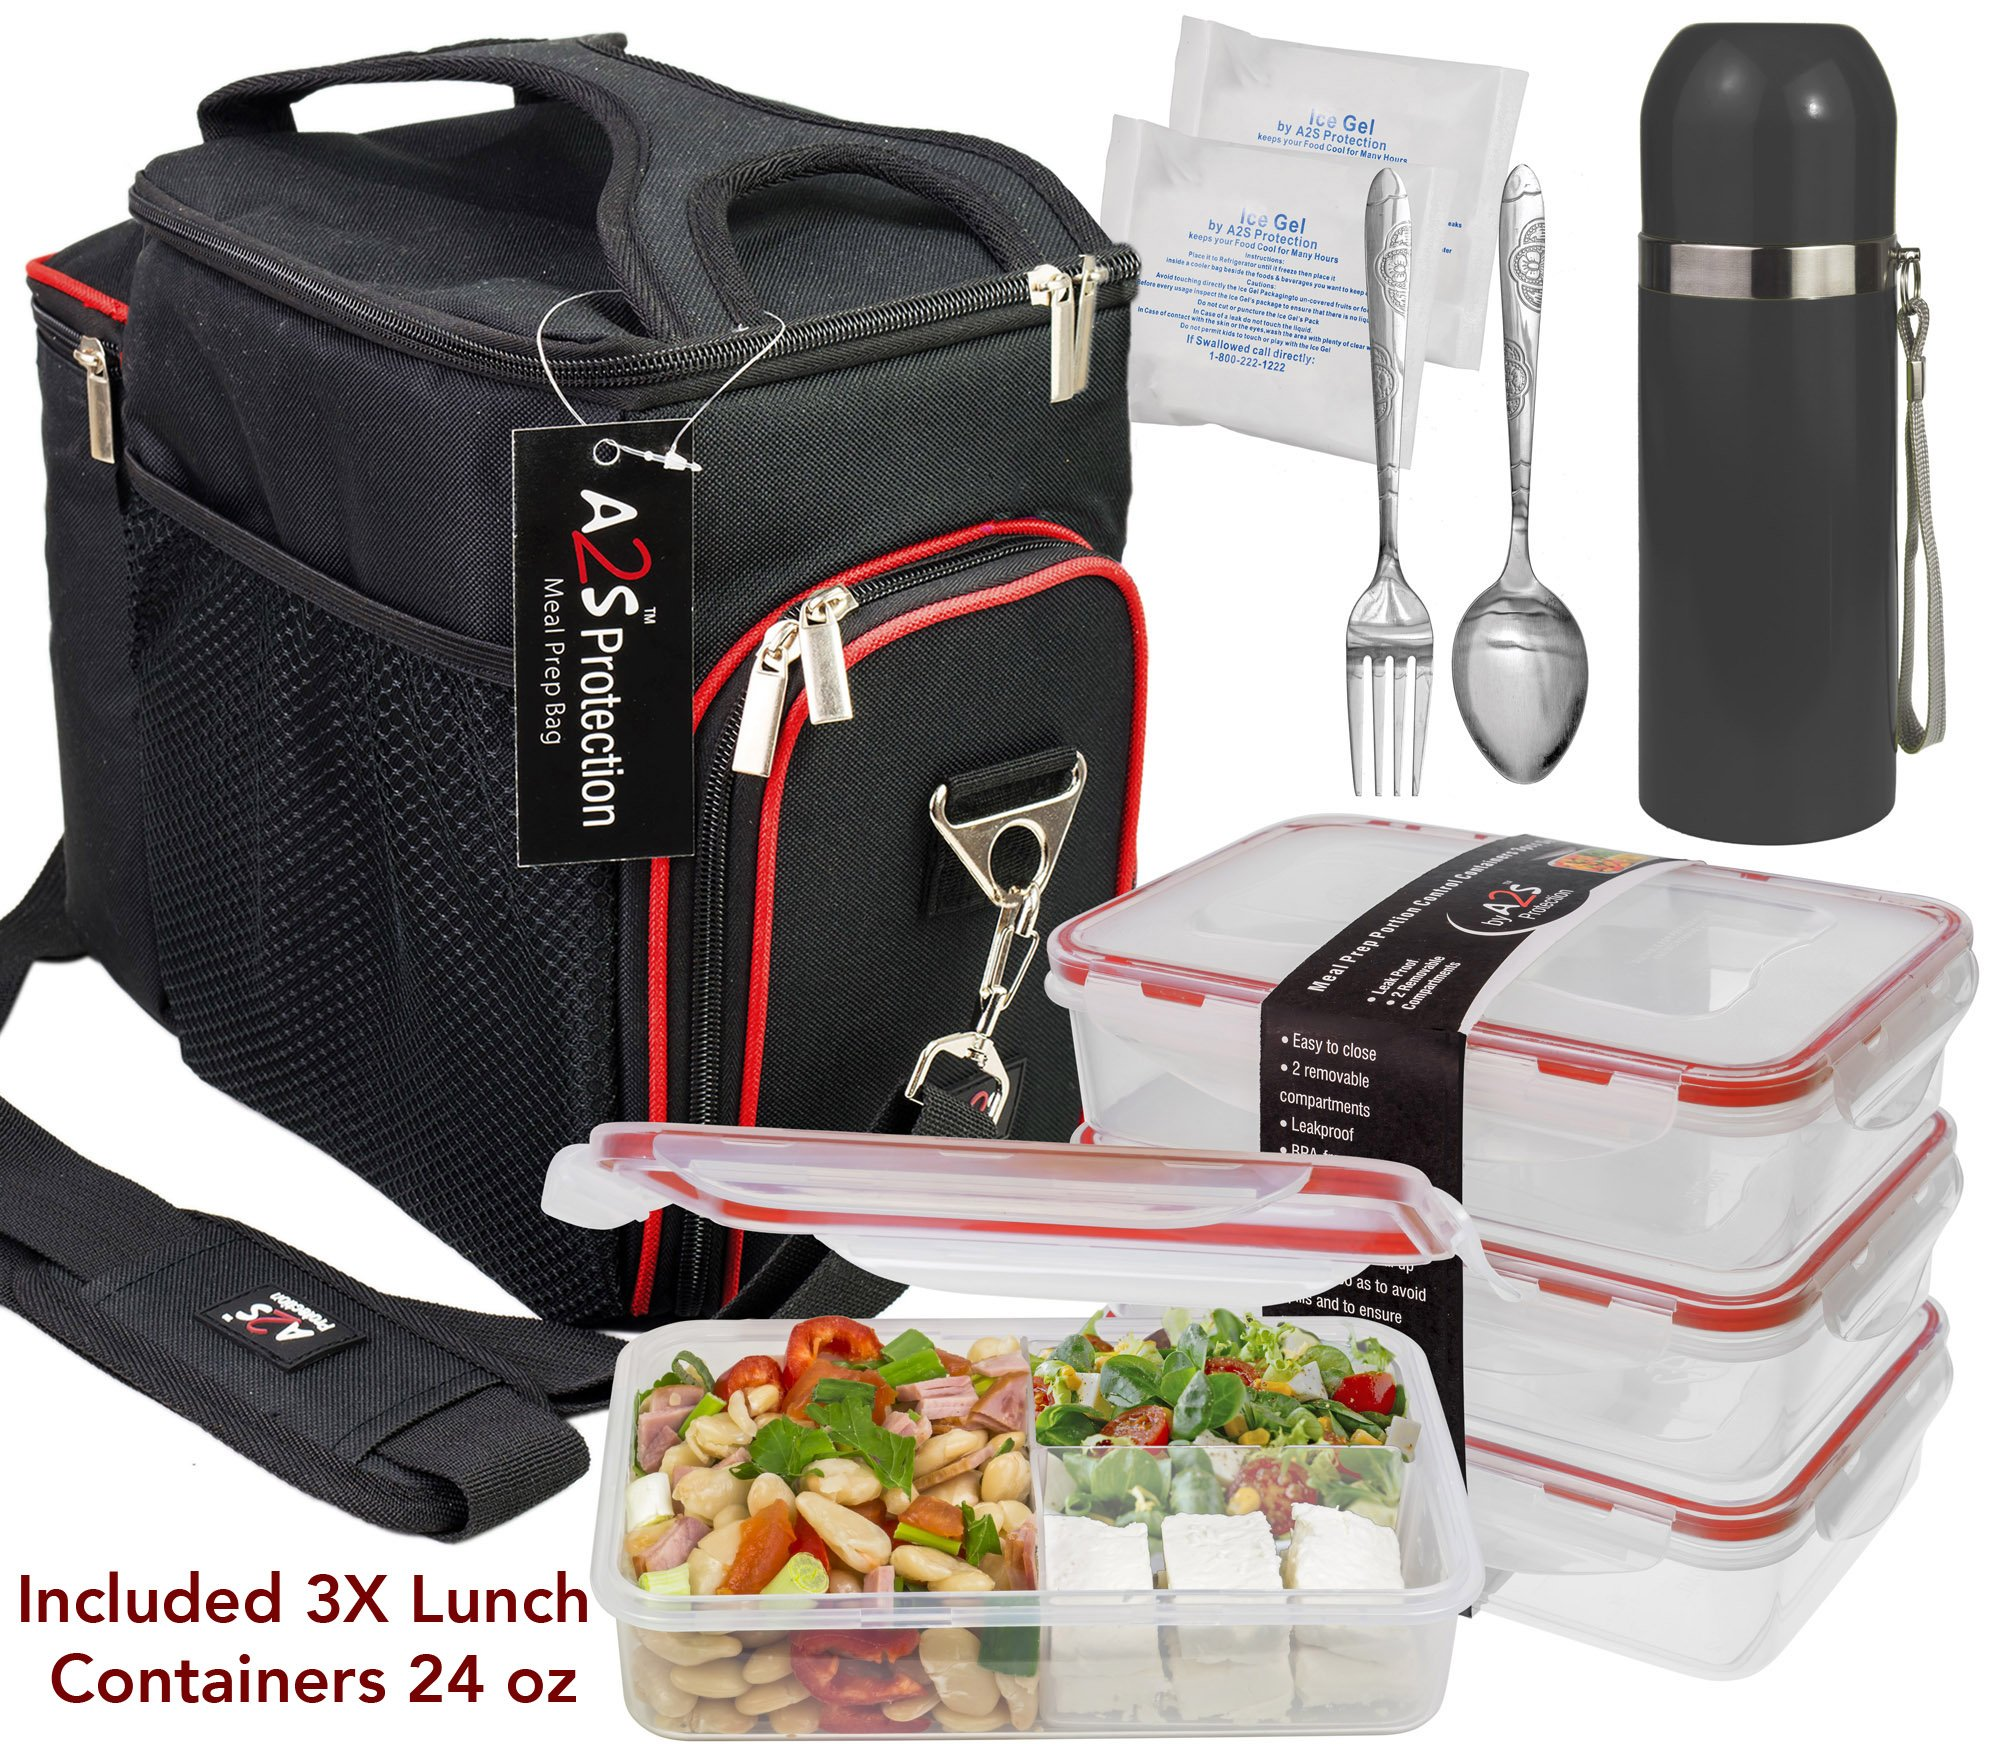 A2S Complete Meal Prep Lunch Box - 8 Pcs Set: Cooler Bag 3x Portion Control Bento Lunch Containers Leakproof 3 Compartments Microwavable BPA Free - Fork & Spoon - Thermos - 2x Ice Gel (Black/Red) by A2S Protection